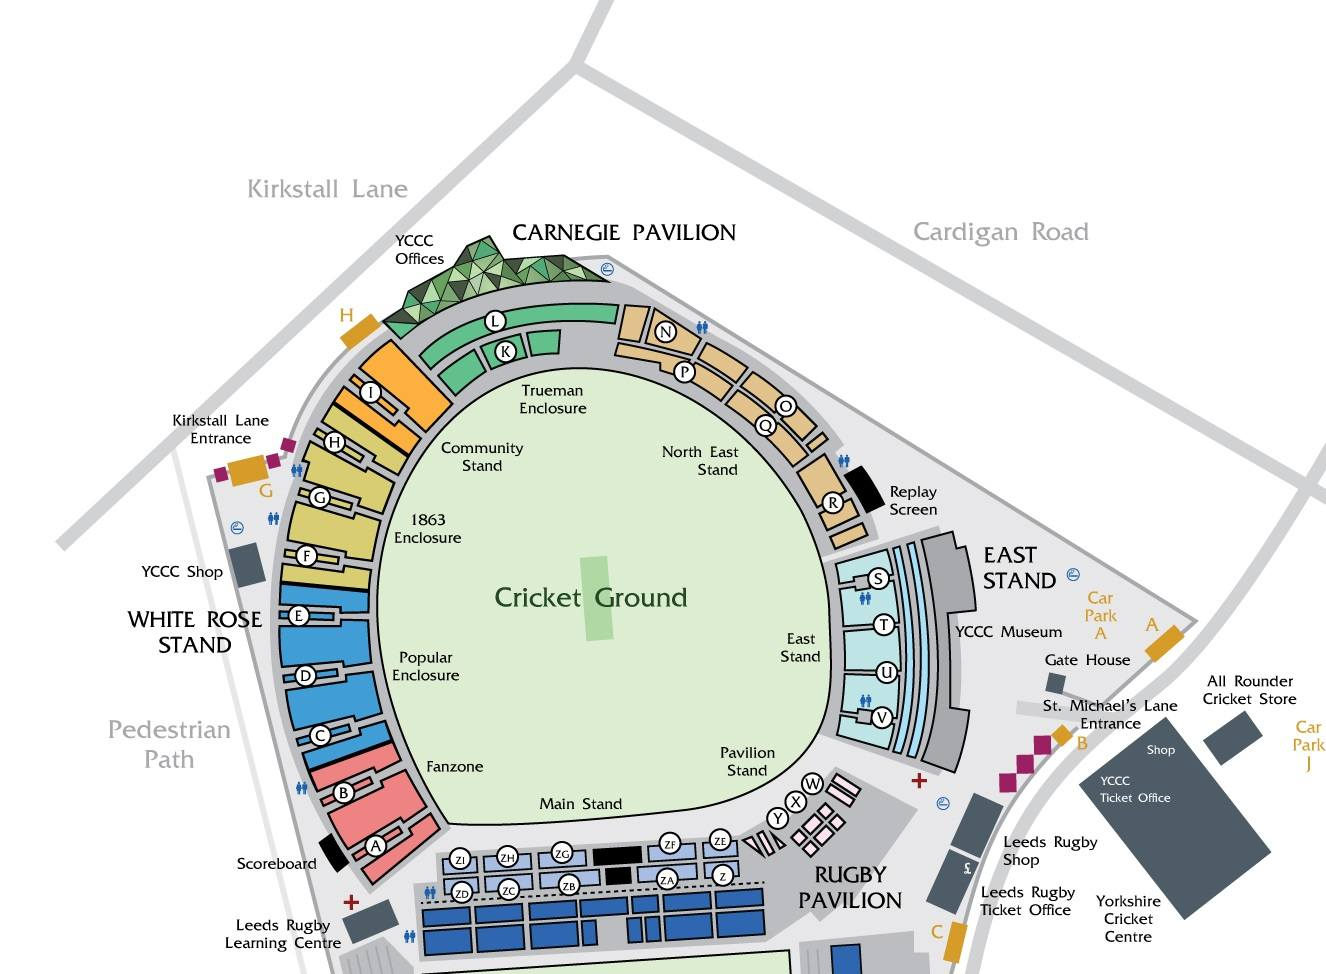 Headingley Leeds Cricket Ground Seating Plan with stands, ticket office, cark park, entry and exit gates